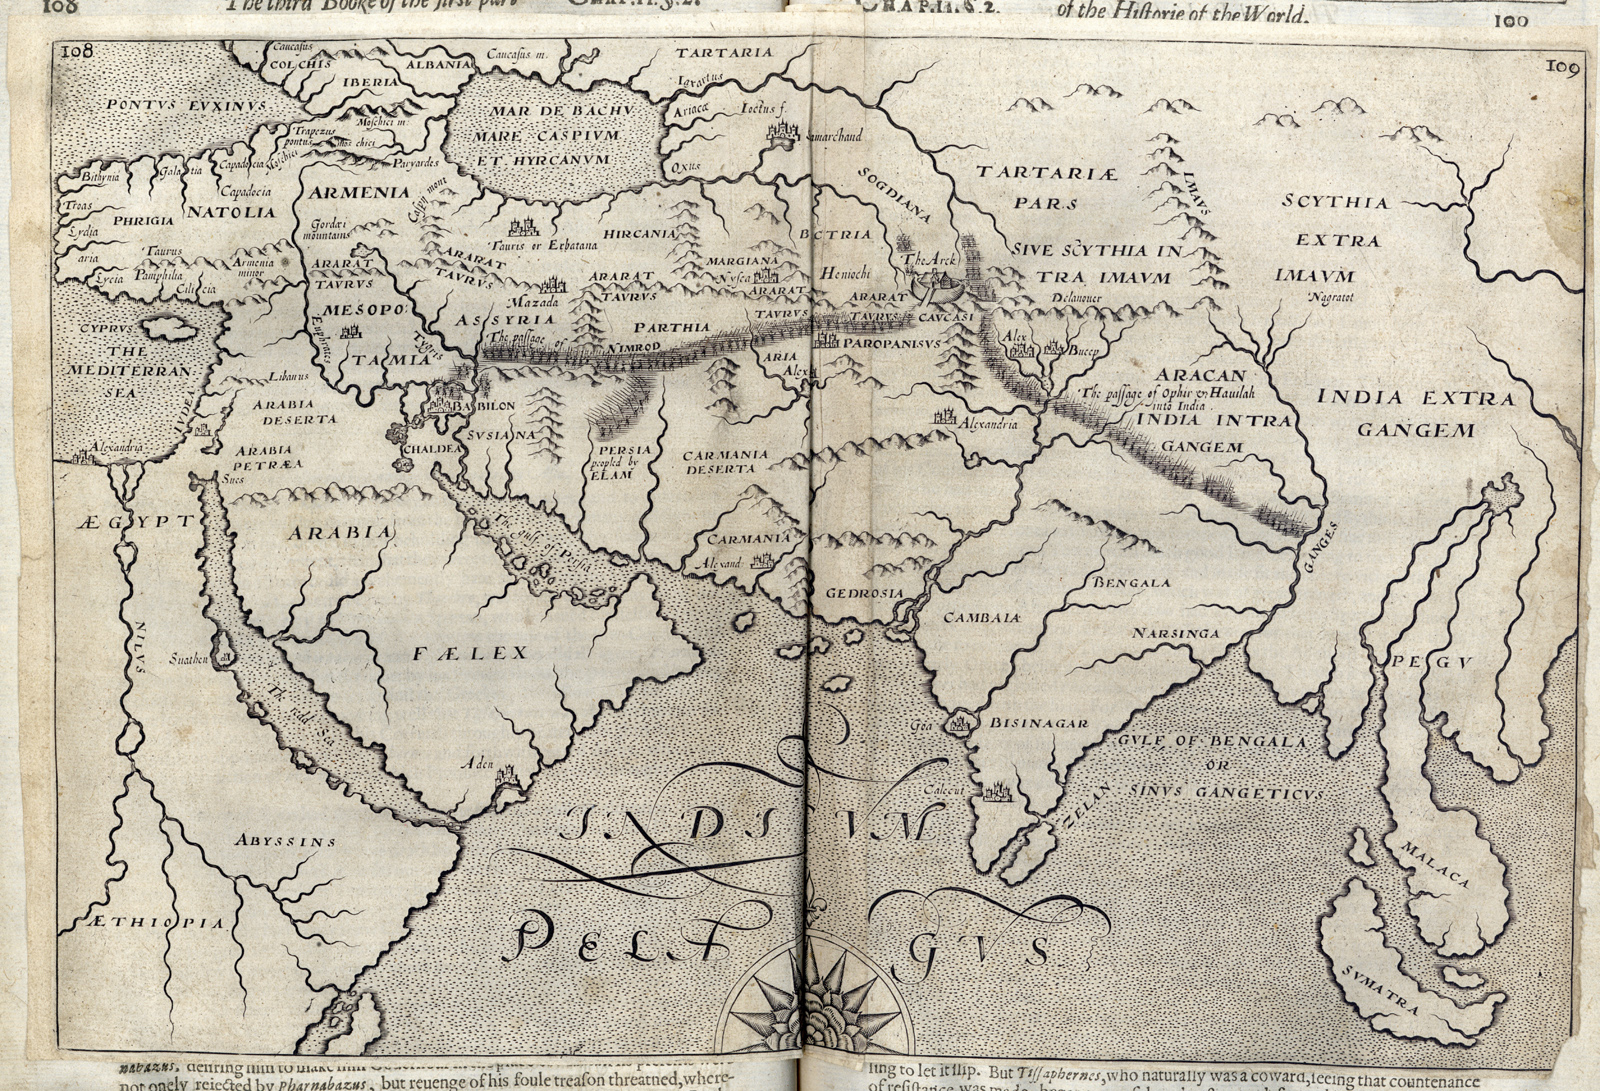 A map from our 1628 edition of The History of the World.